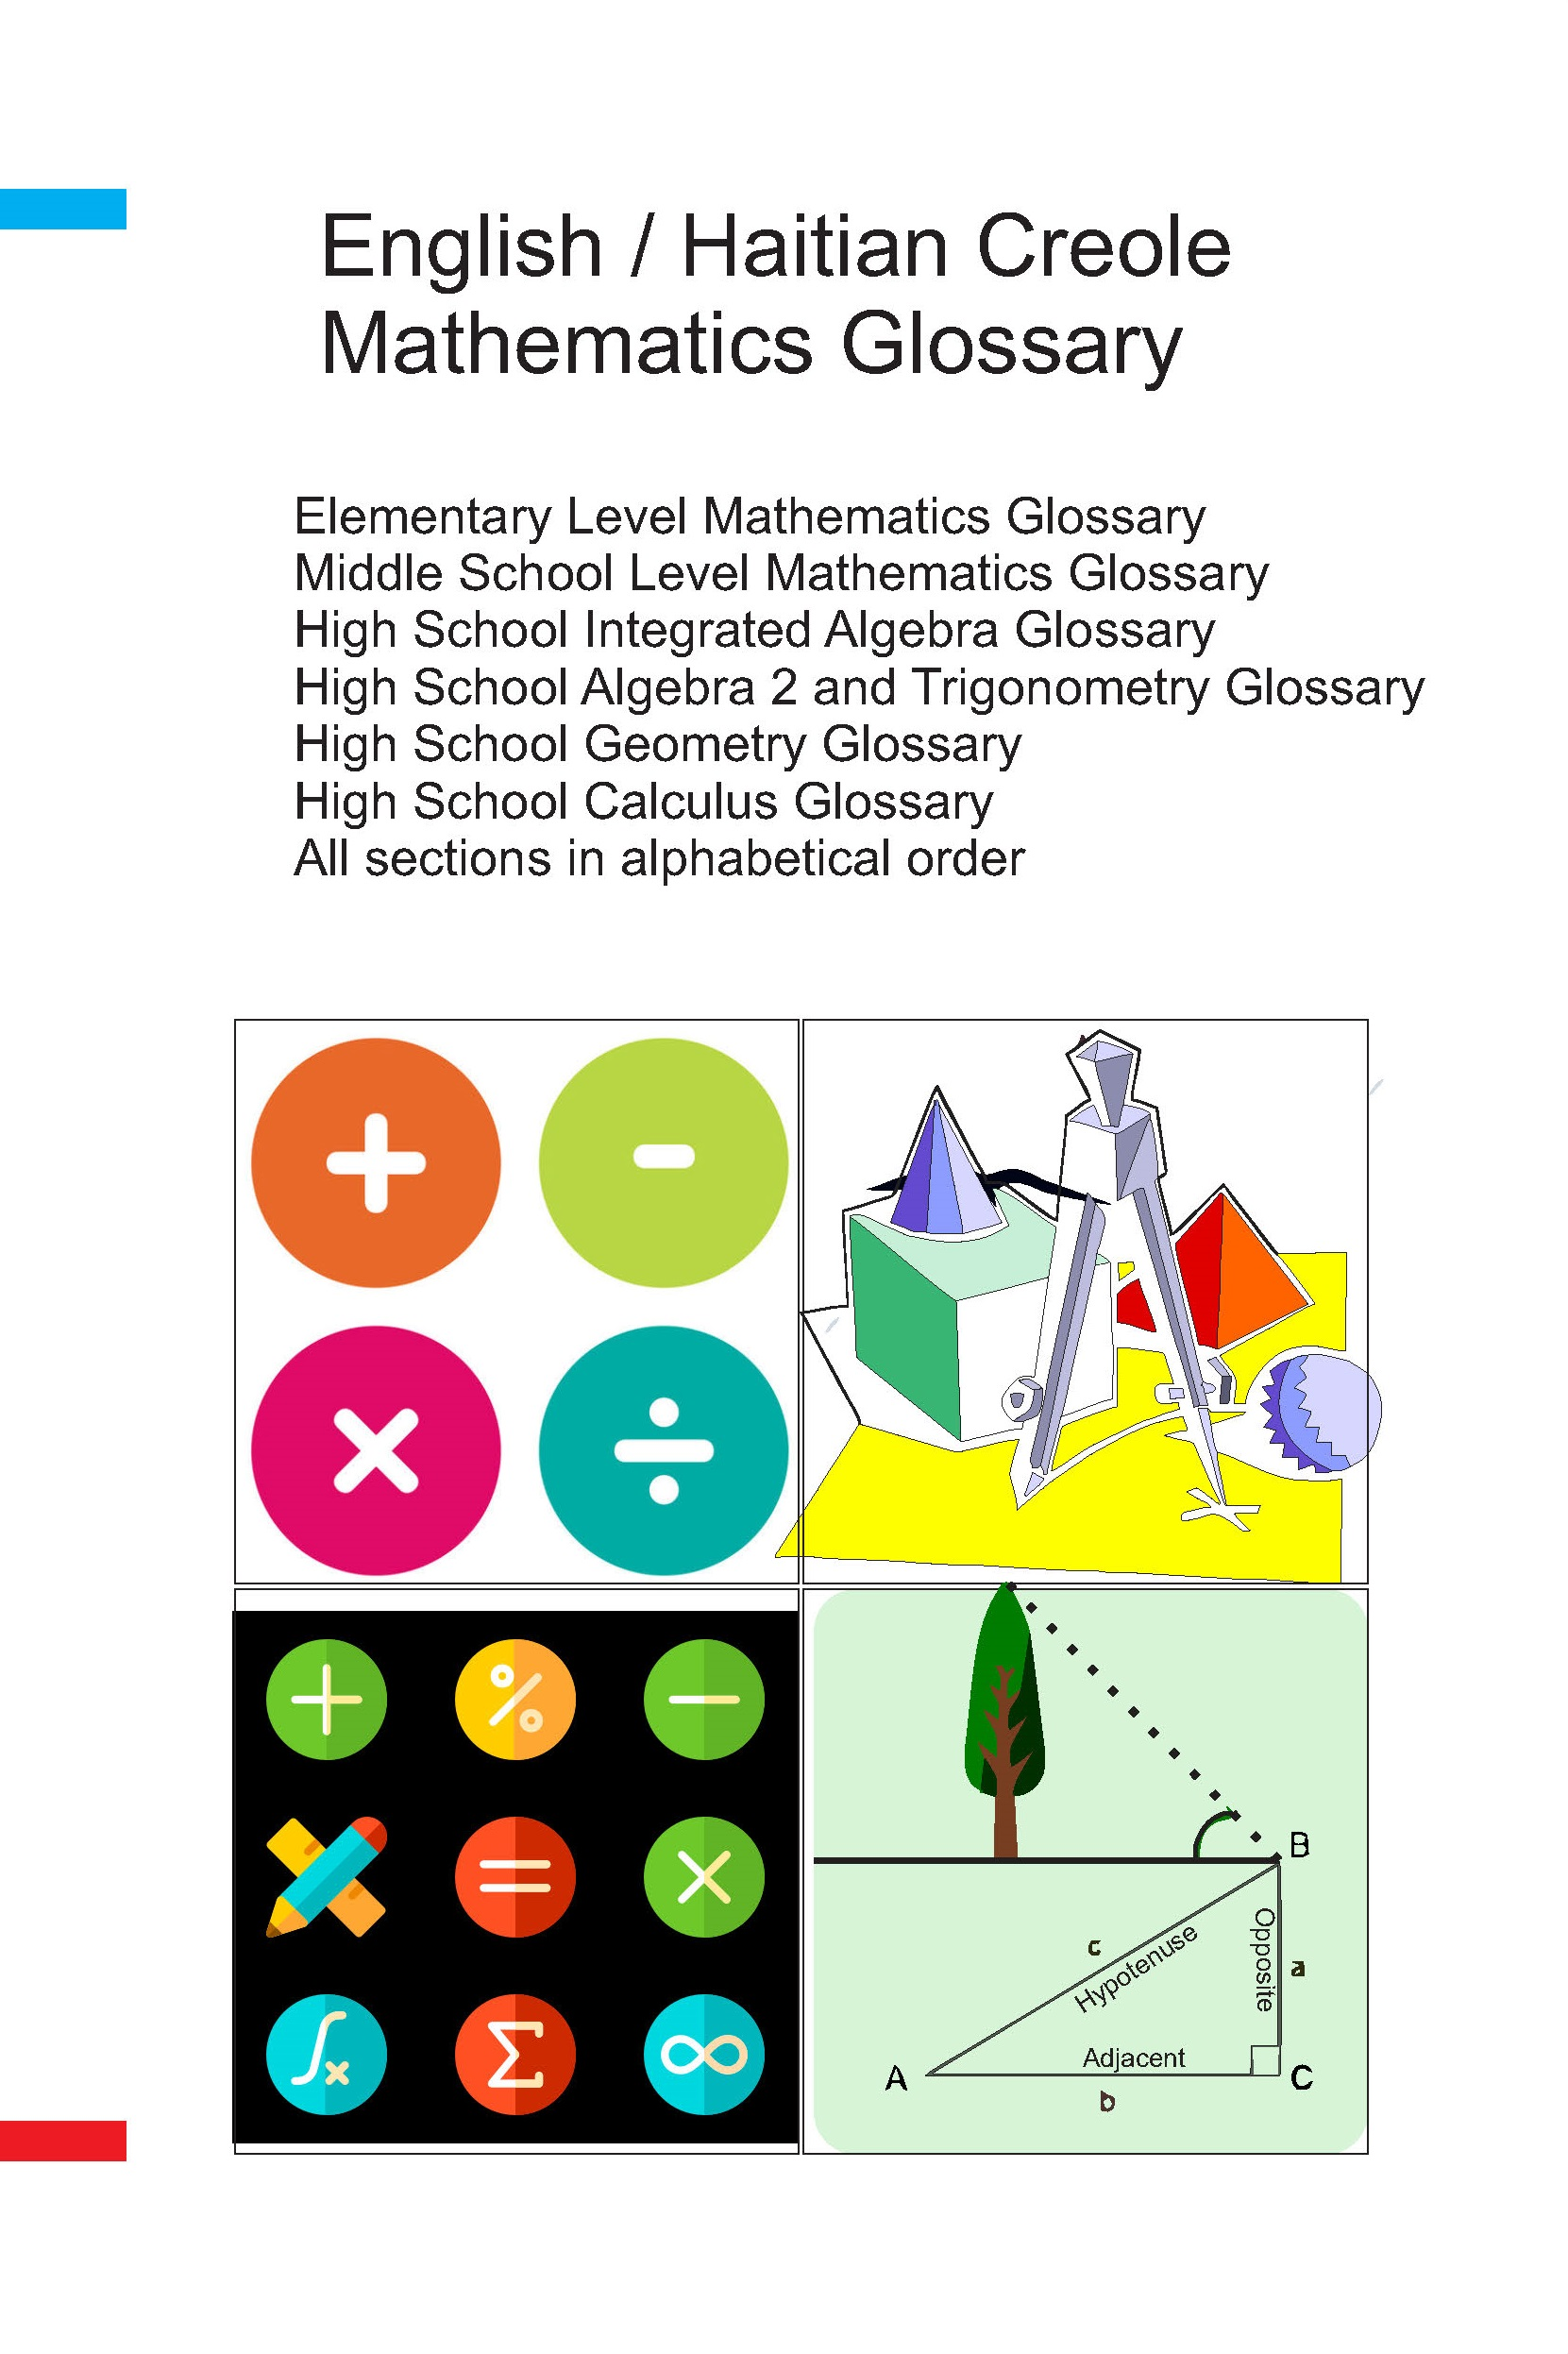 Mathematics Glossary  English/Haitian Creole  Elementary, Middle School and High School Level